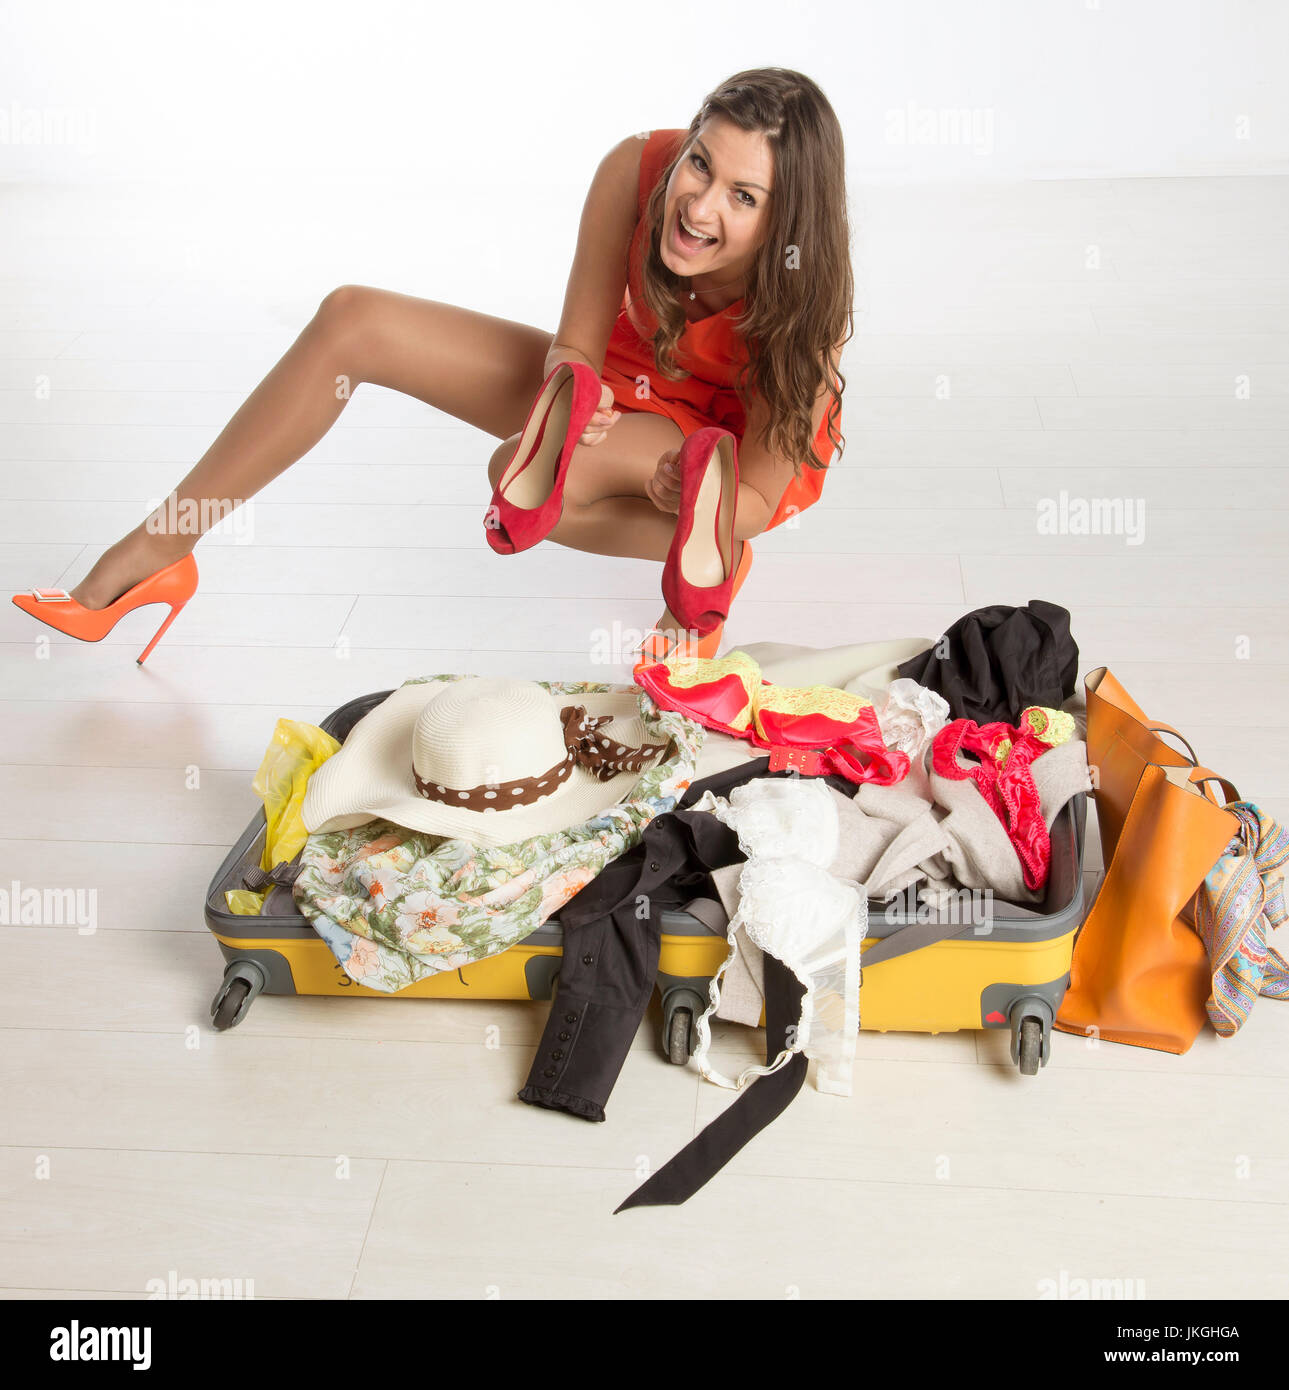 Holidaymaker packing a suitcase, summer clothing and a large hat - Stock Image